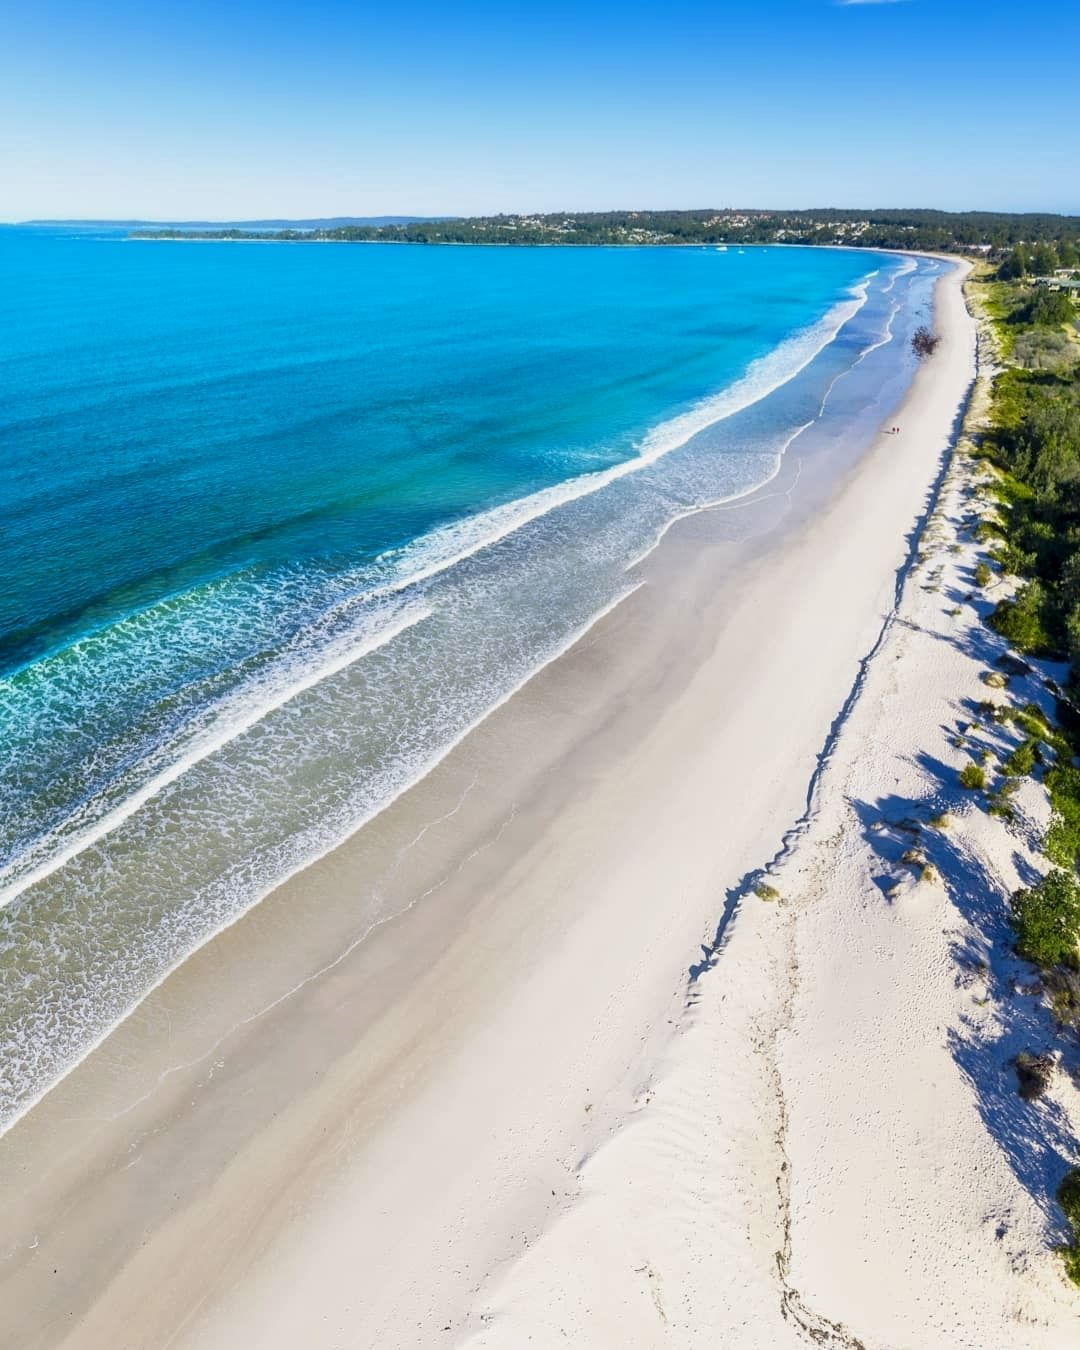 Check out those gorgeous white sands of Jervis Bay! Always stunning, especially from above. I did look out for some dolphins but no such luck unfortunately. Still such a cool place there. ⛵ 🌊 - _________________________________ - #exploringaustralia #australia_shotz #dronenature #takemetoaustralia #ig_shotz #ozscapers #ig_australia #itsamazingoutthere #droneglobe #focusaustralia #aussie_images #dailybaileynsw #tv_australia #amazing_australia #amazingausnz #skysupply #ig_discover..